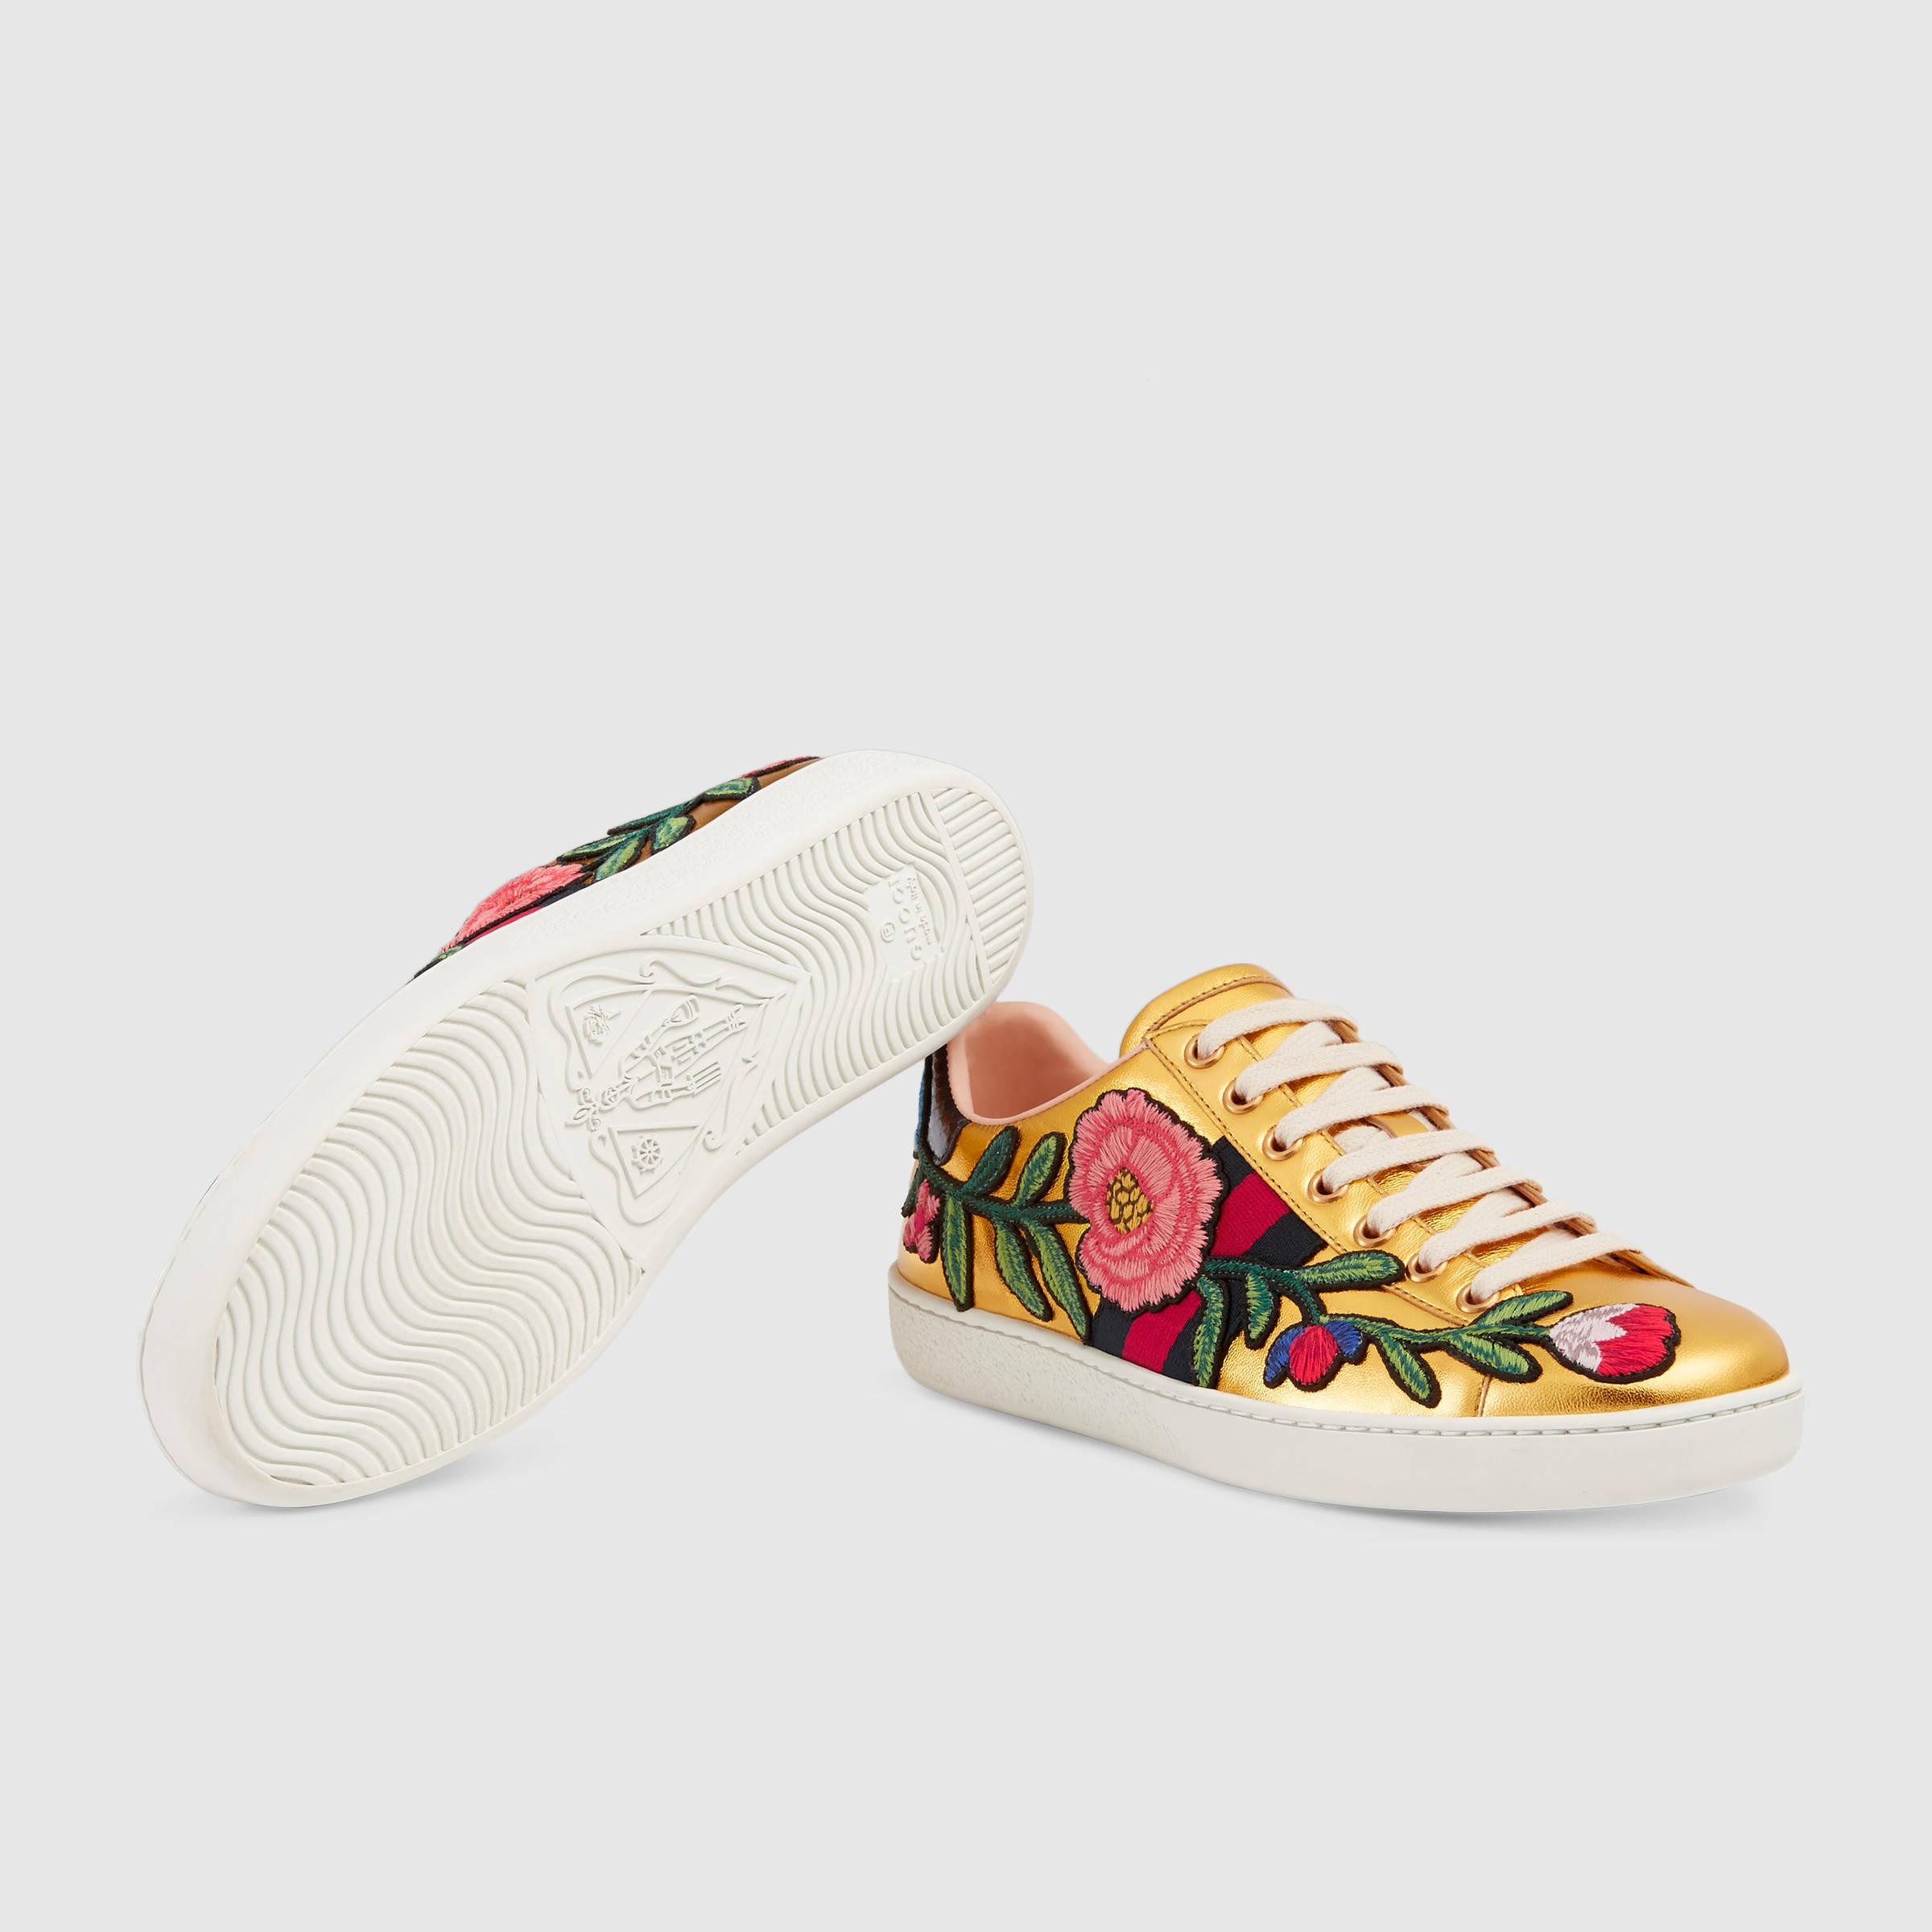 58507b403 Gucci Ace Embroidered Low-Top Sneaker in Brown - Lyst